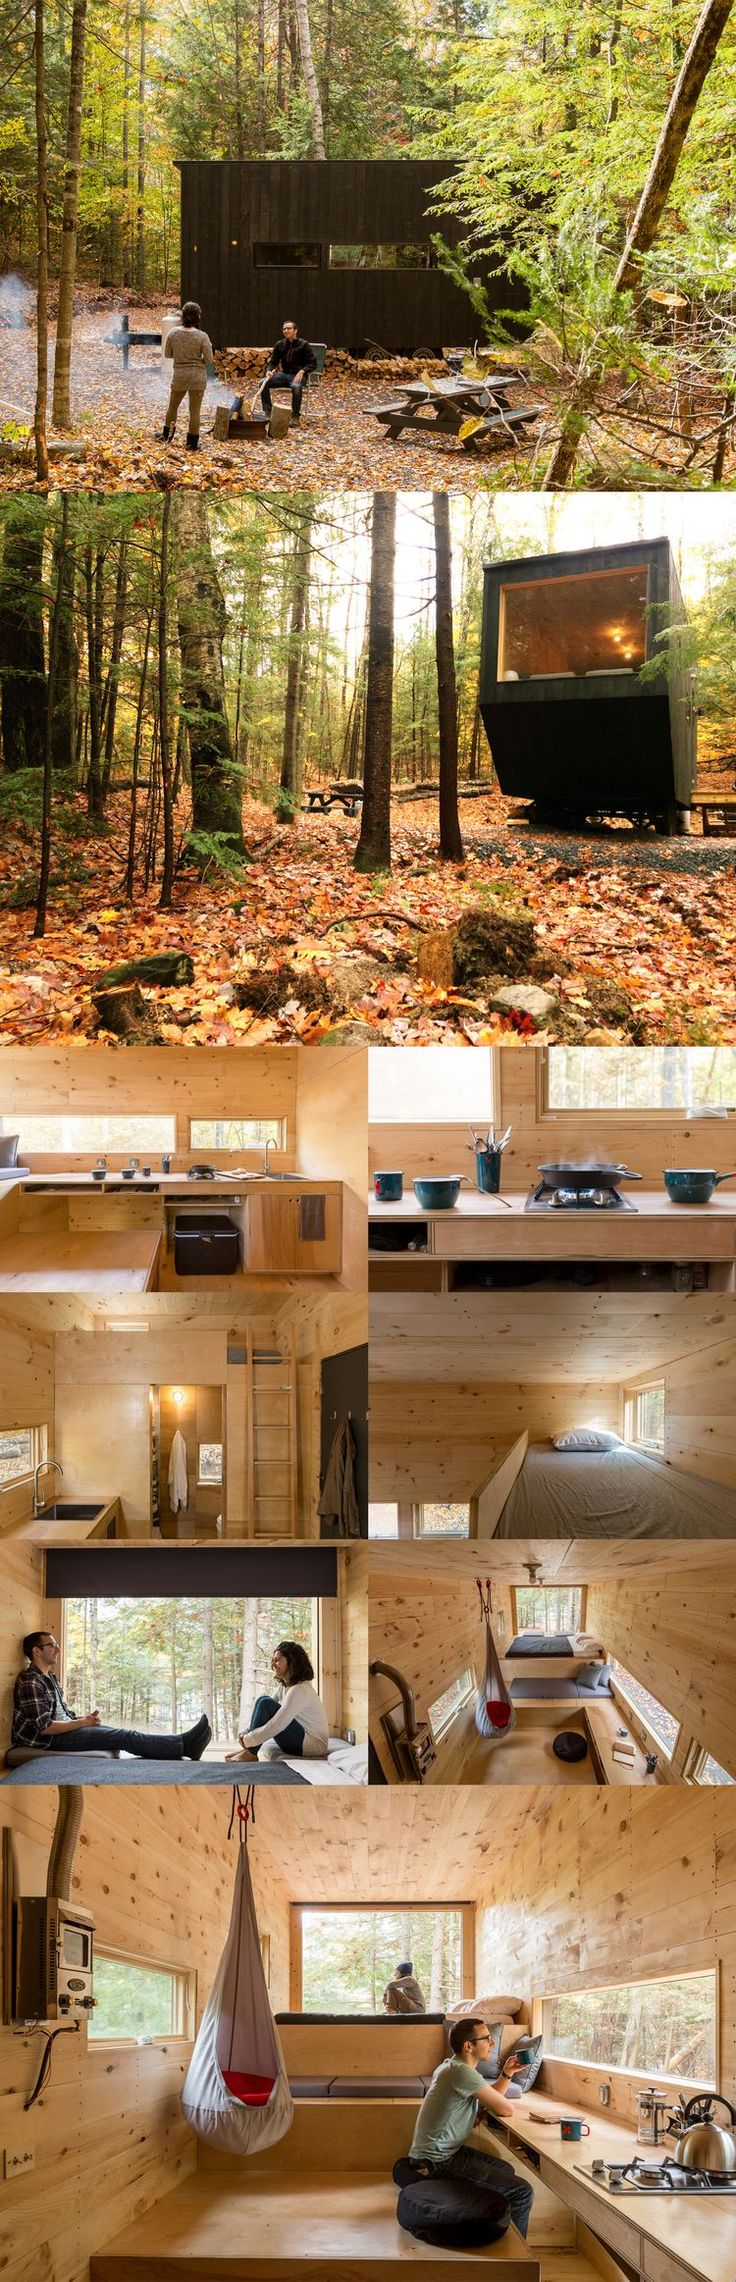 The best images about small tiny houses on Pinterest House